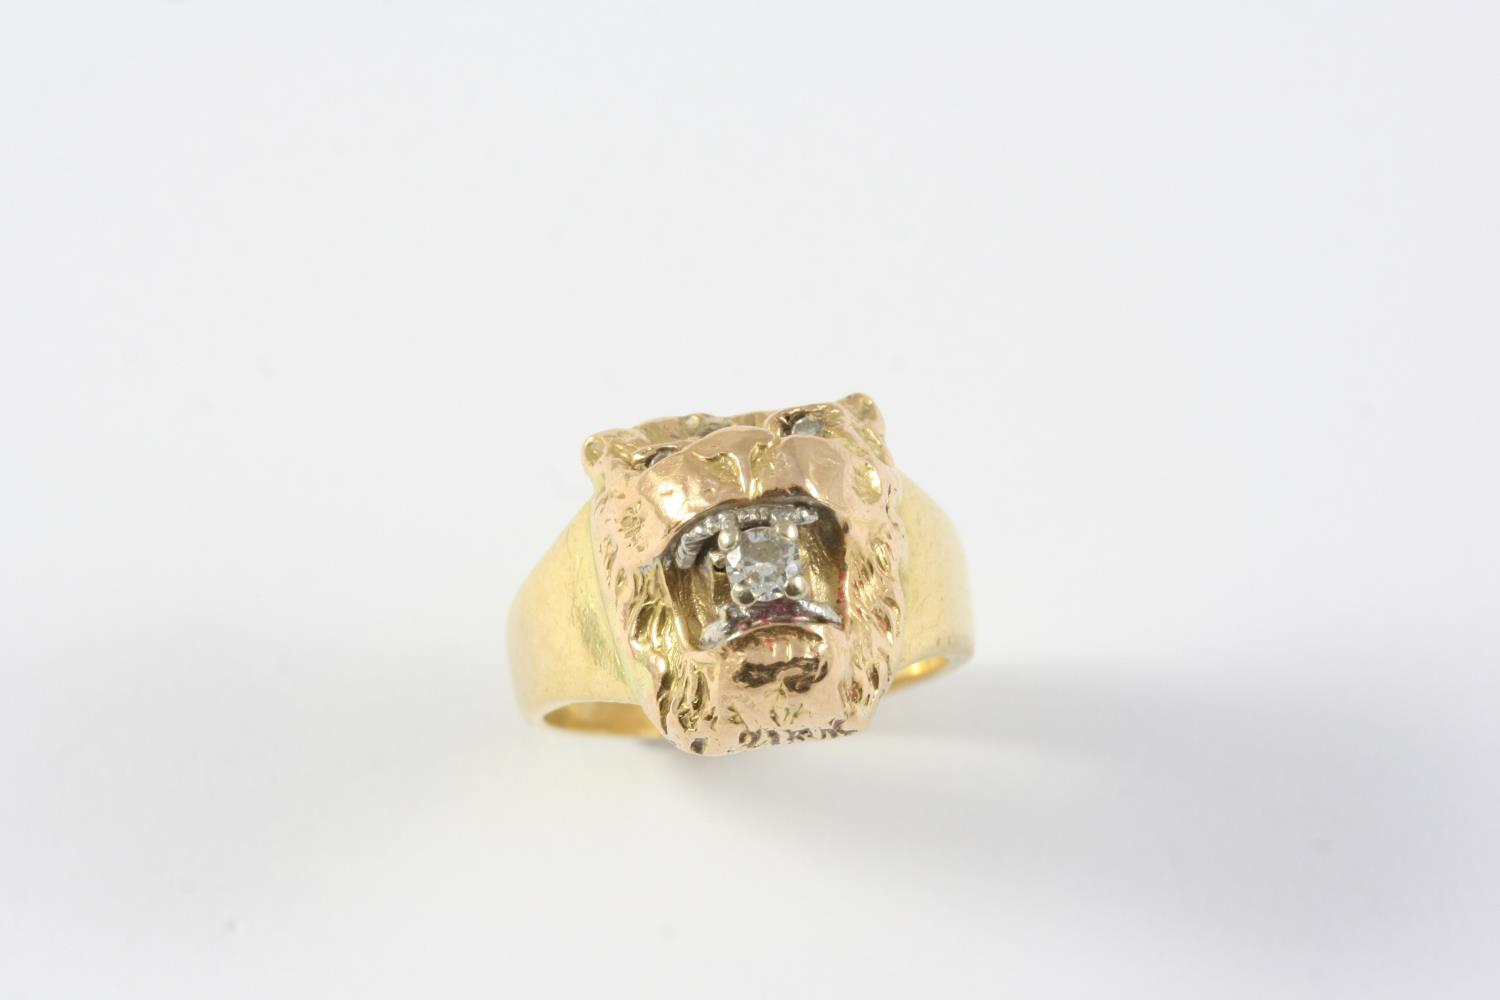 A GOLD AND DIAMOND LION MASK RING realistically formed, with diamond set eyes, holding a circular-